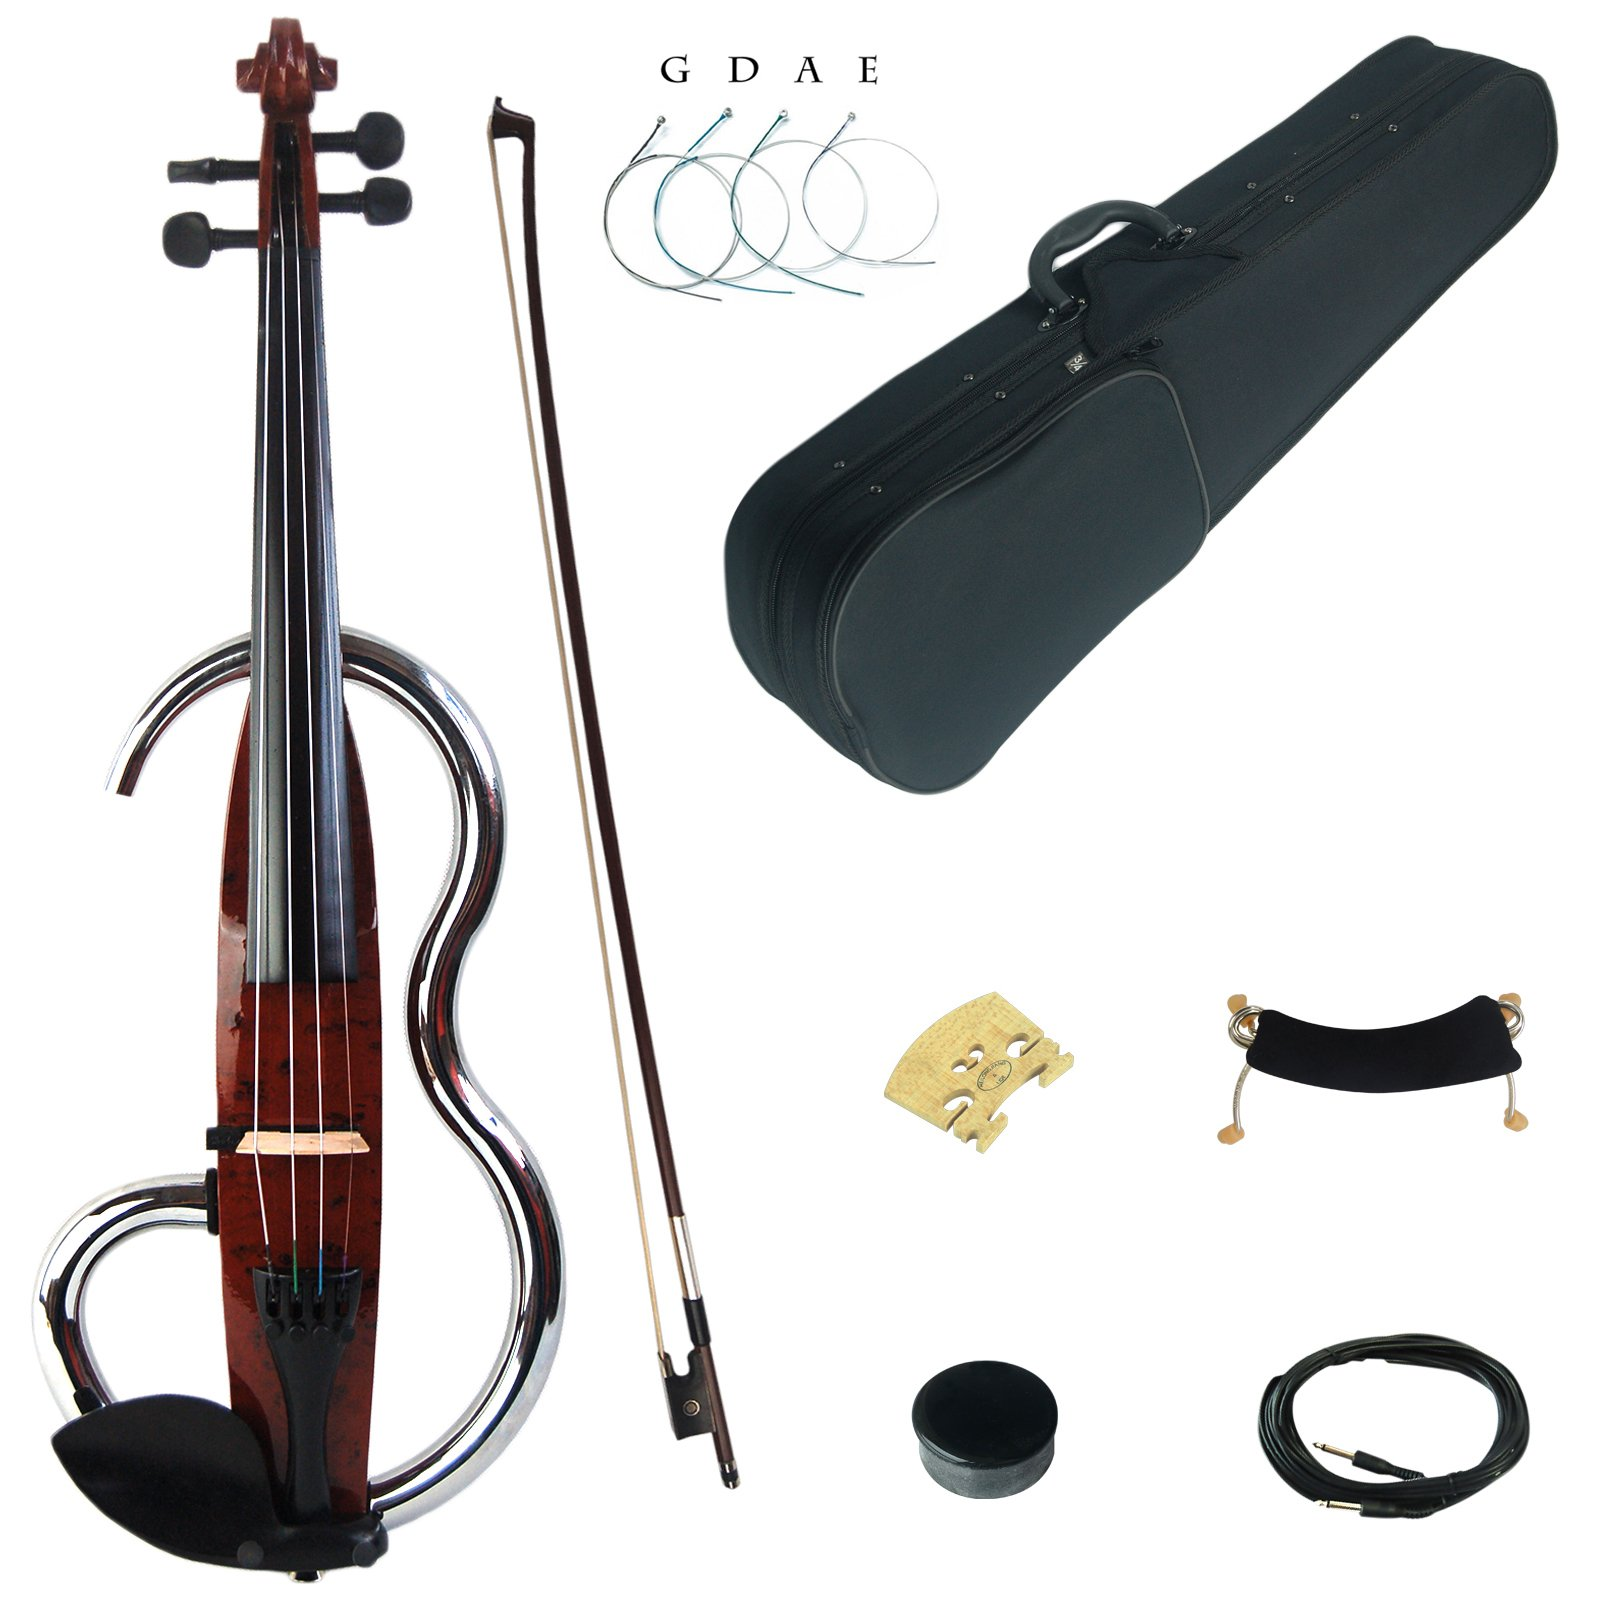 Kinglos 4/4 Brown Colored Solid Wood Advanced Metal Electric/Silent Violin Kit with Ebony Fittings Full Size (JSDS1601) by Kinglos